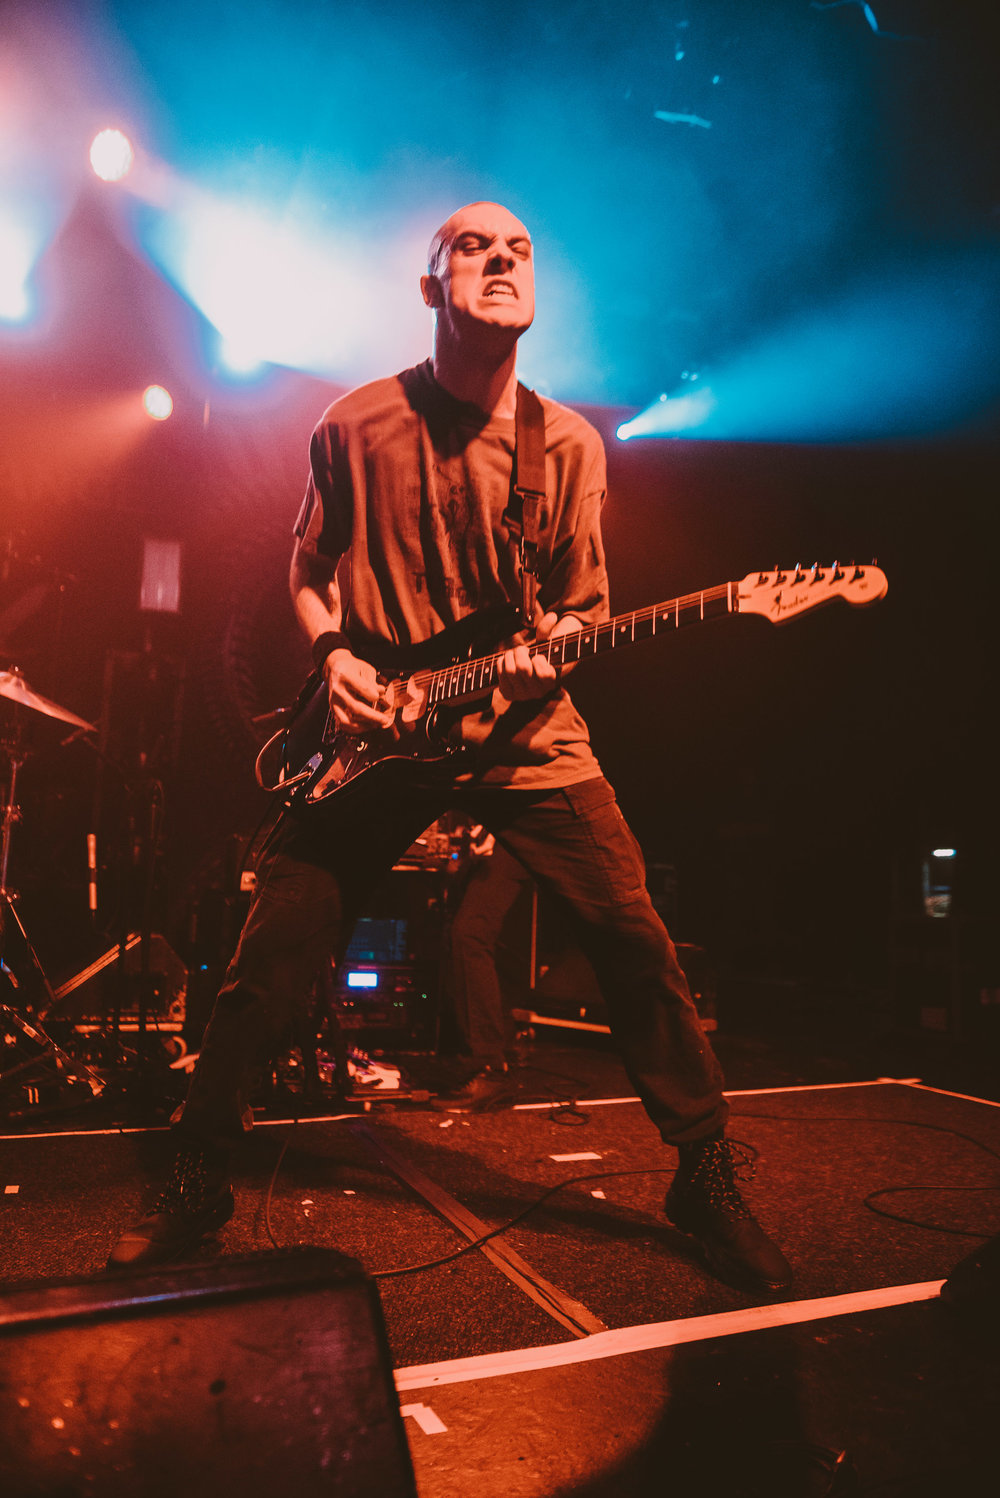 2_Code_Orange-Commodore_Ballroom-Timothy_Nguyen-20180123 (14 of 15).jpg